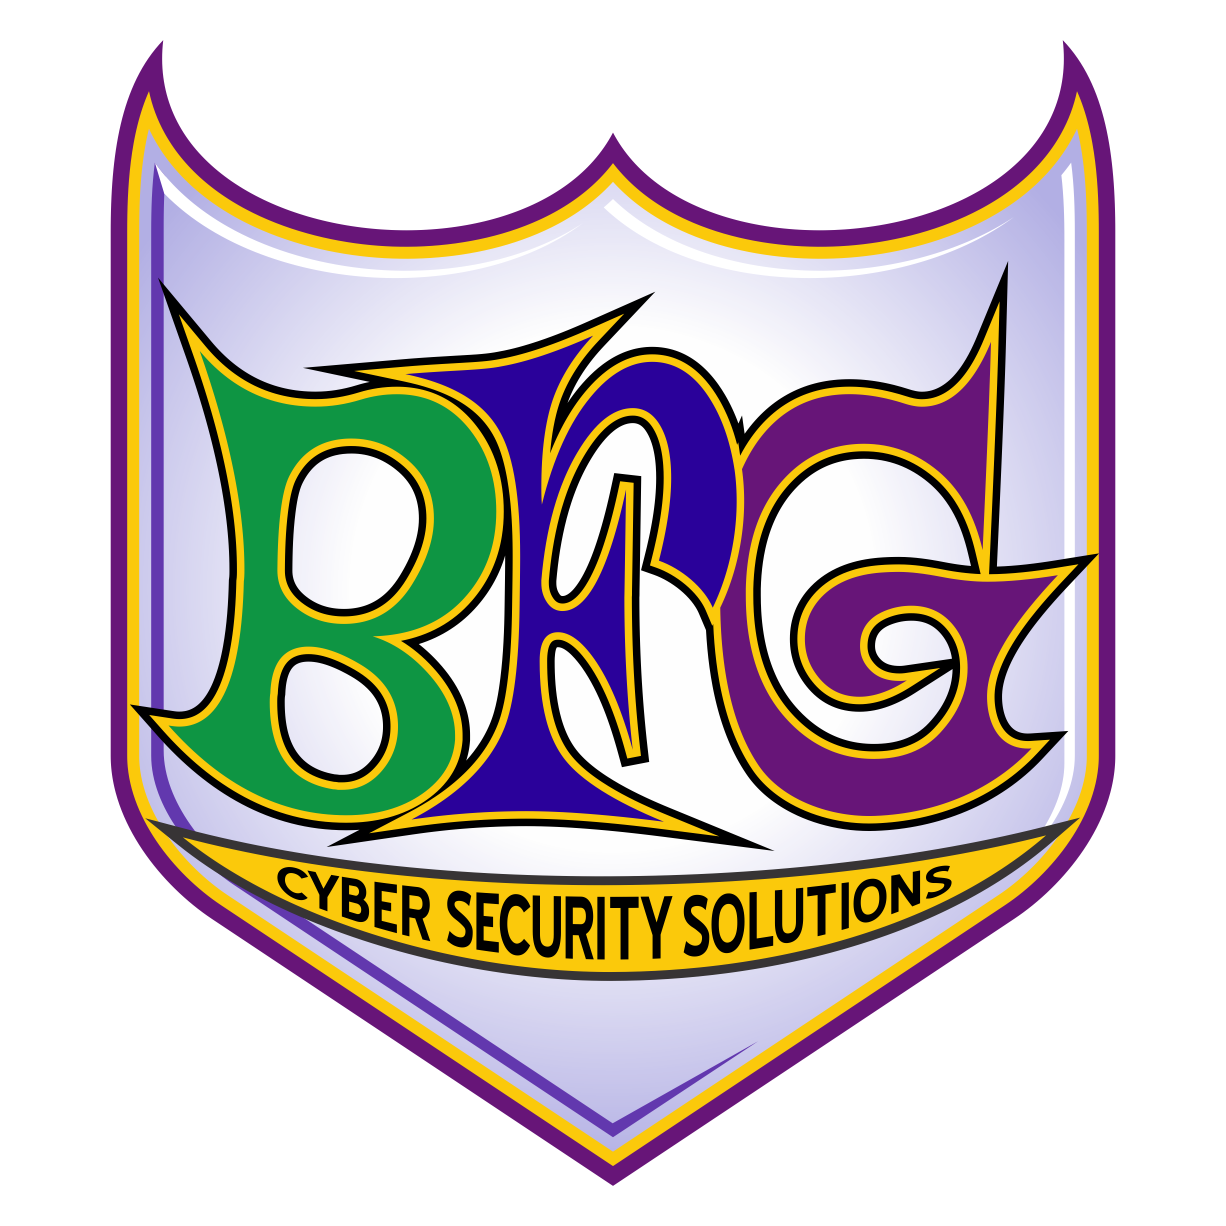 BFG Cyber Security Solutions image 1